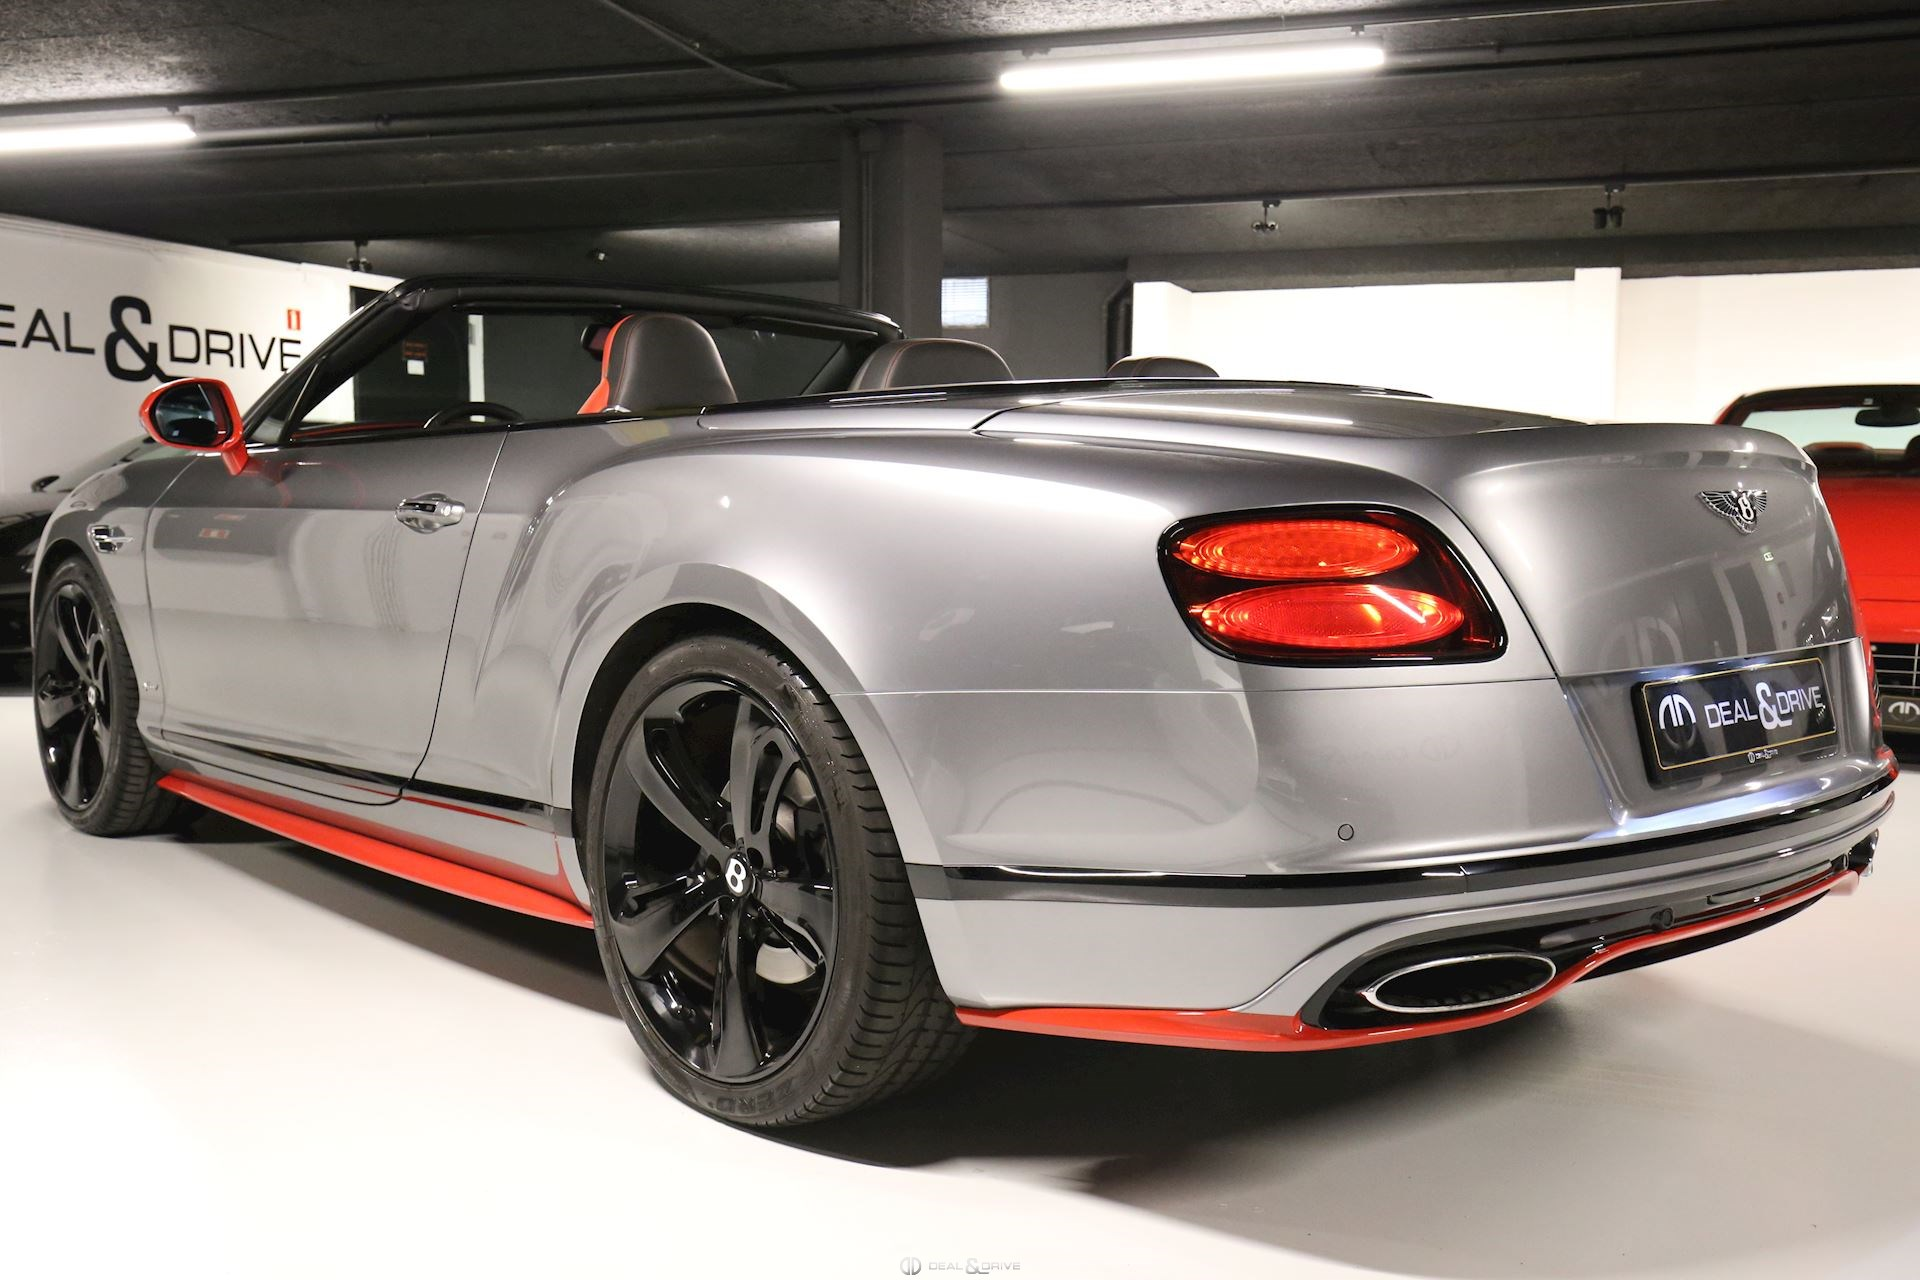 BENTLEY CONTINENTAL GTC SPEED Deal & Drive